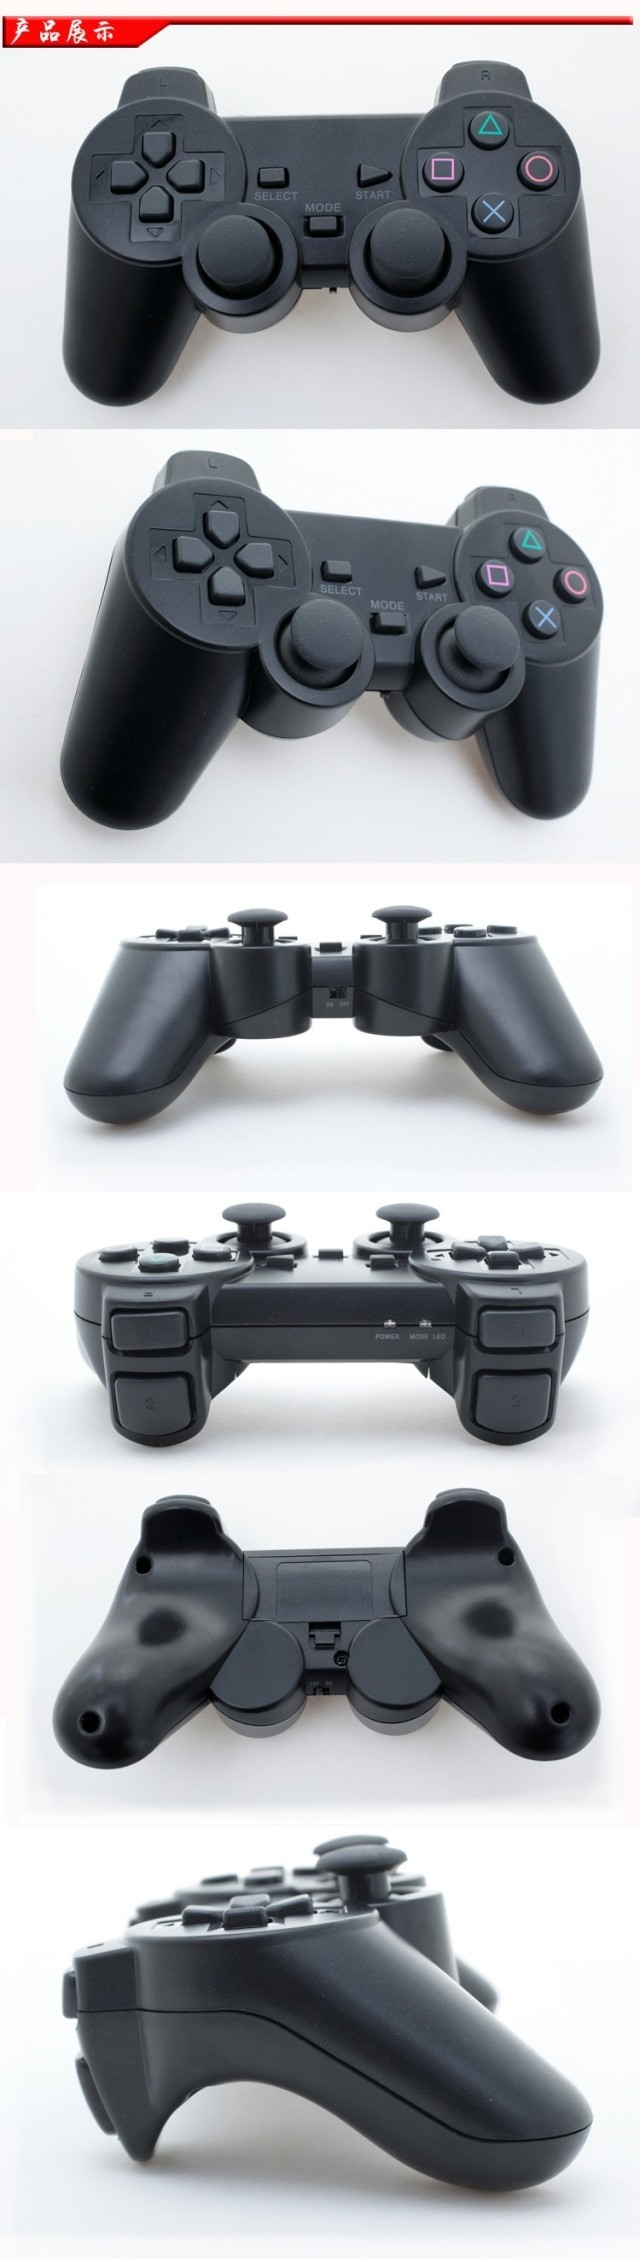 image for Wireless USB PS3 PS2 Game Controller Joystick Gamepad With PS2 PS3 USB